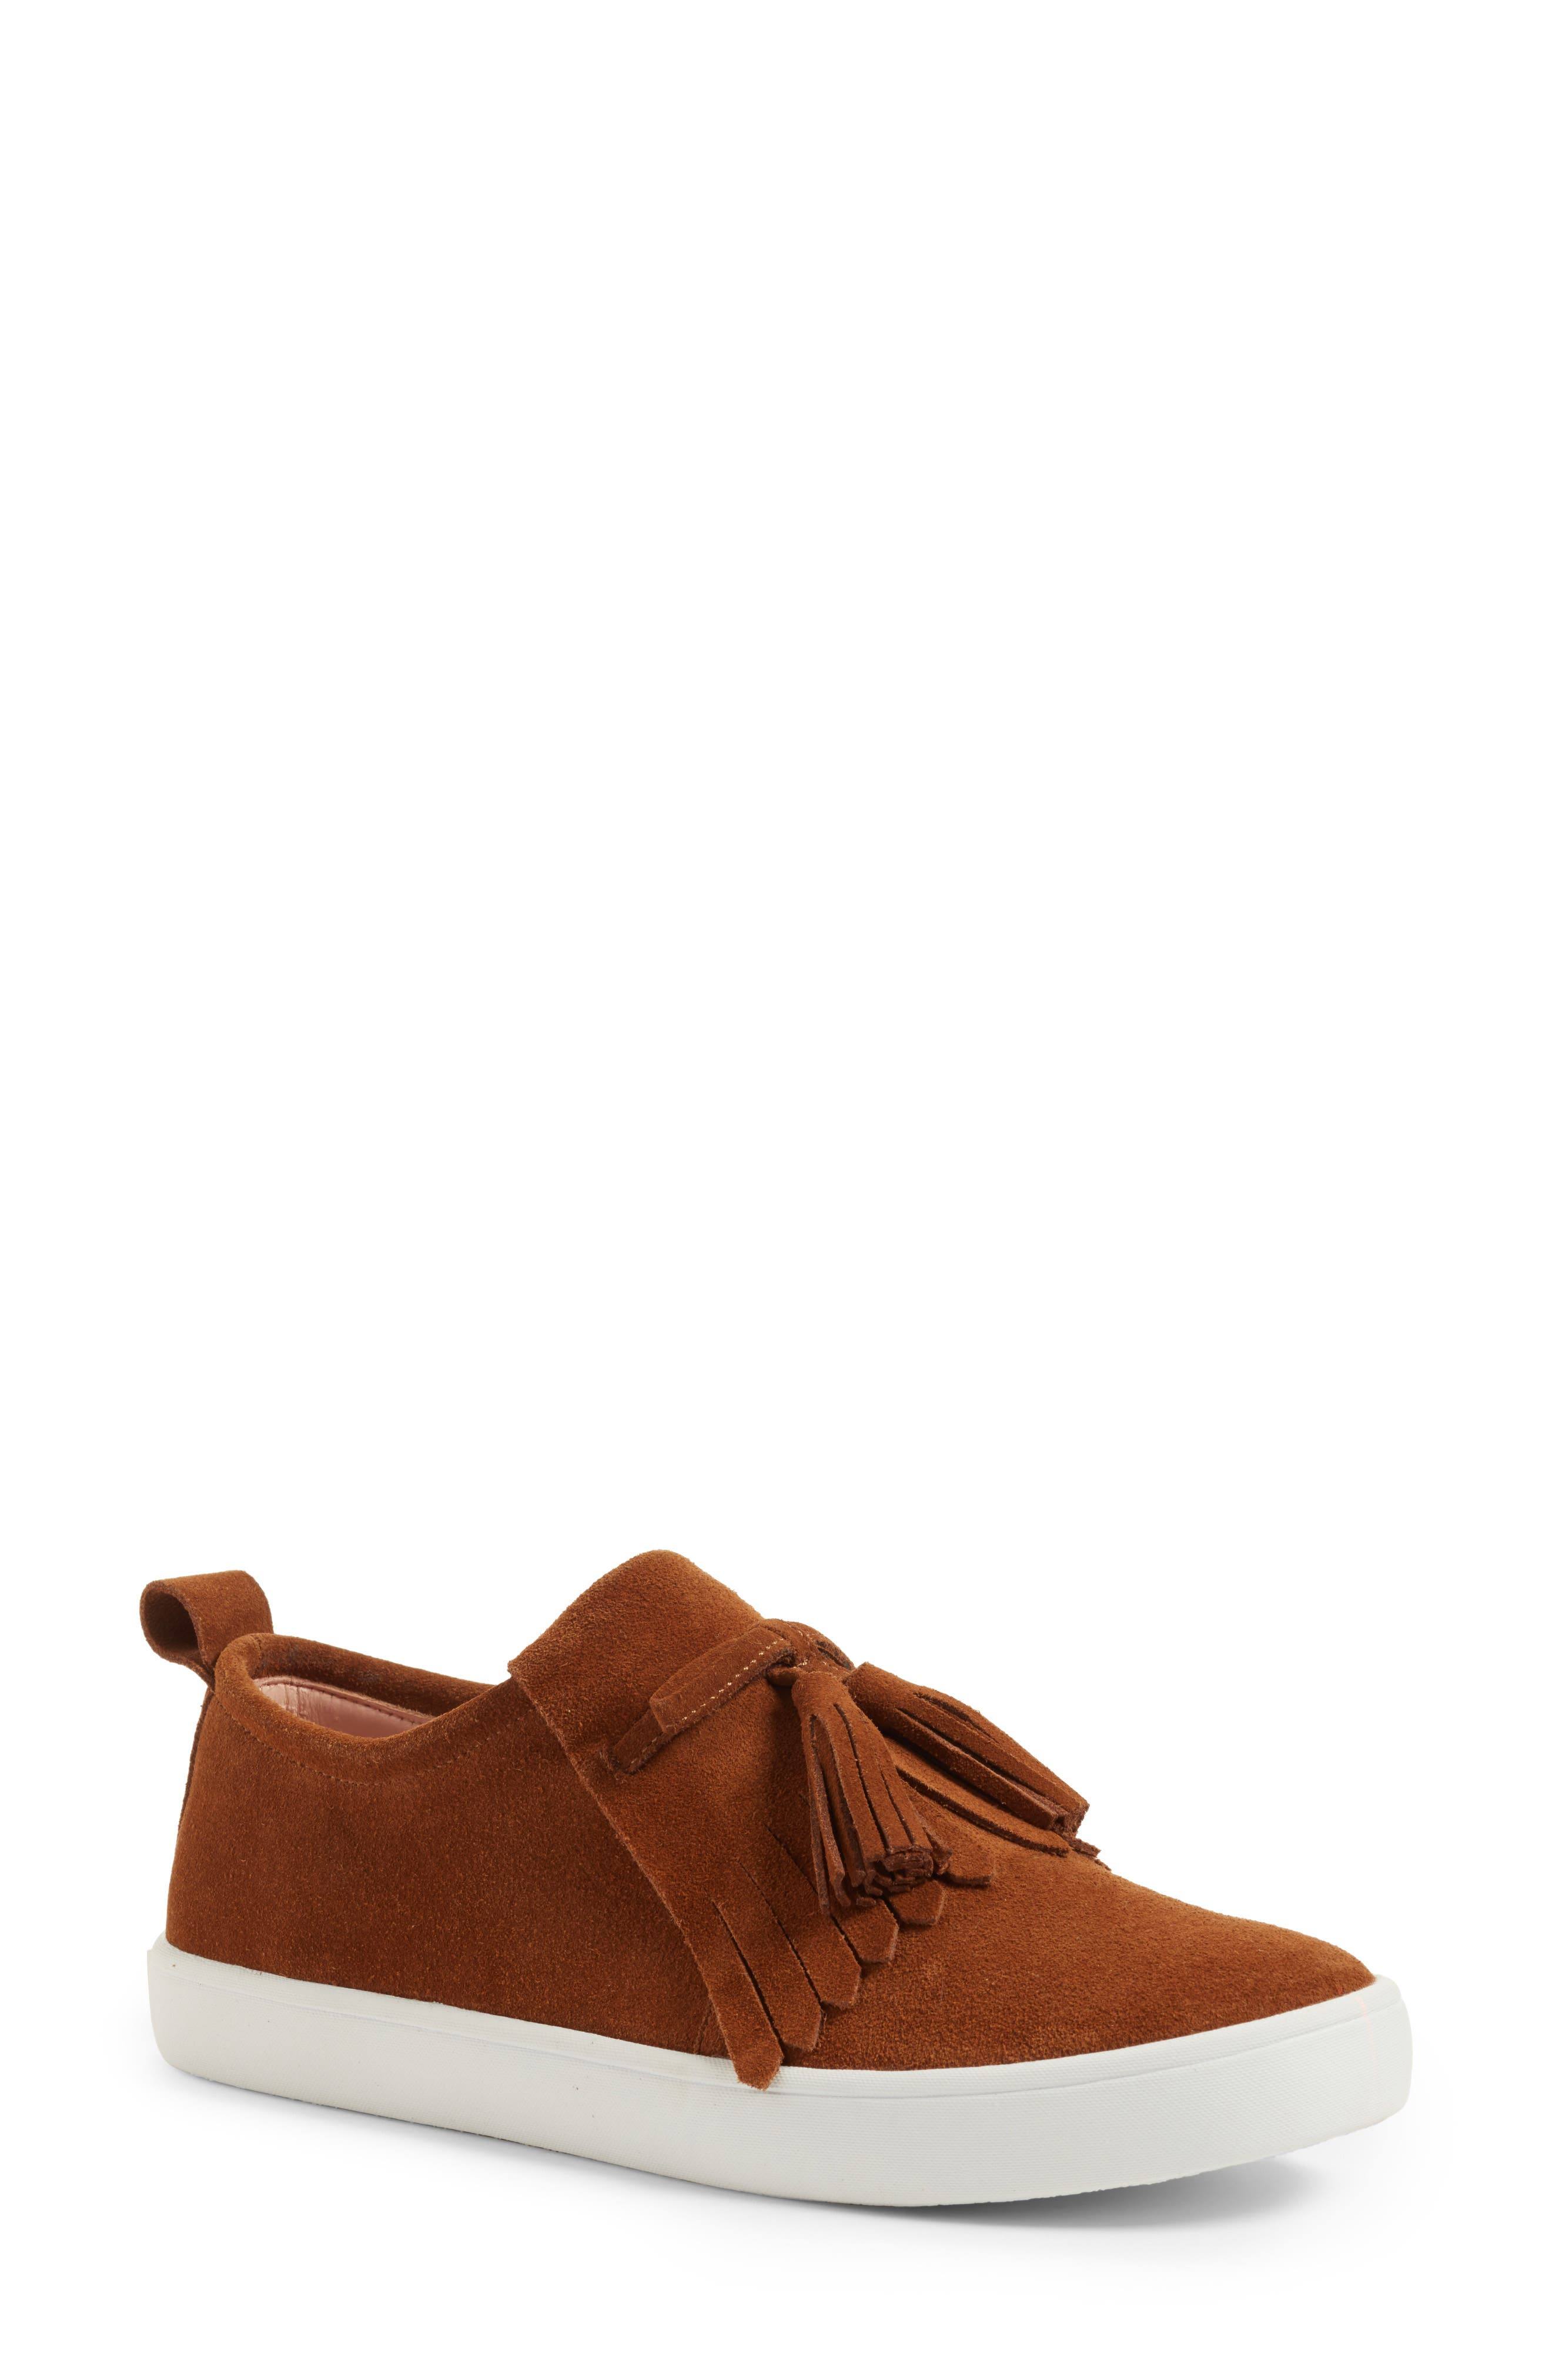 lenna tassel sneaker,                             Main thumbnail 1, color,                             Whiskey Suede